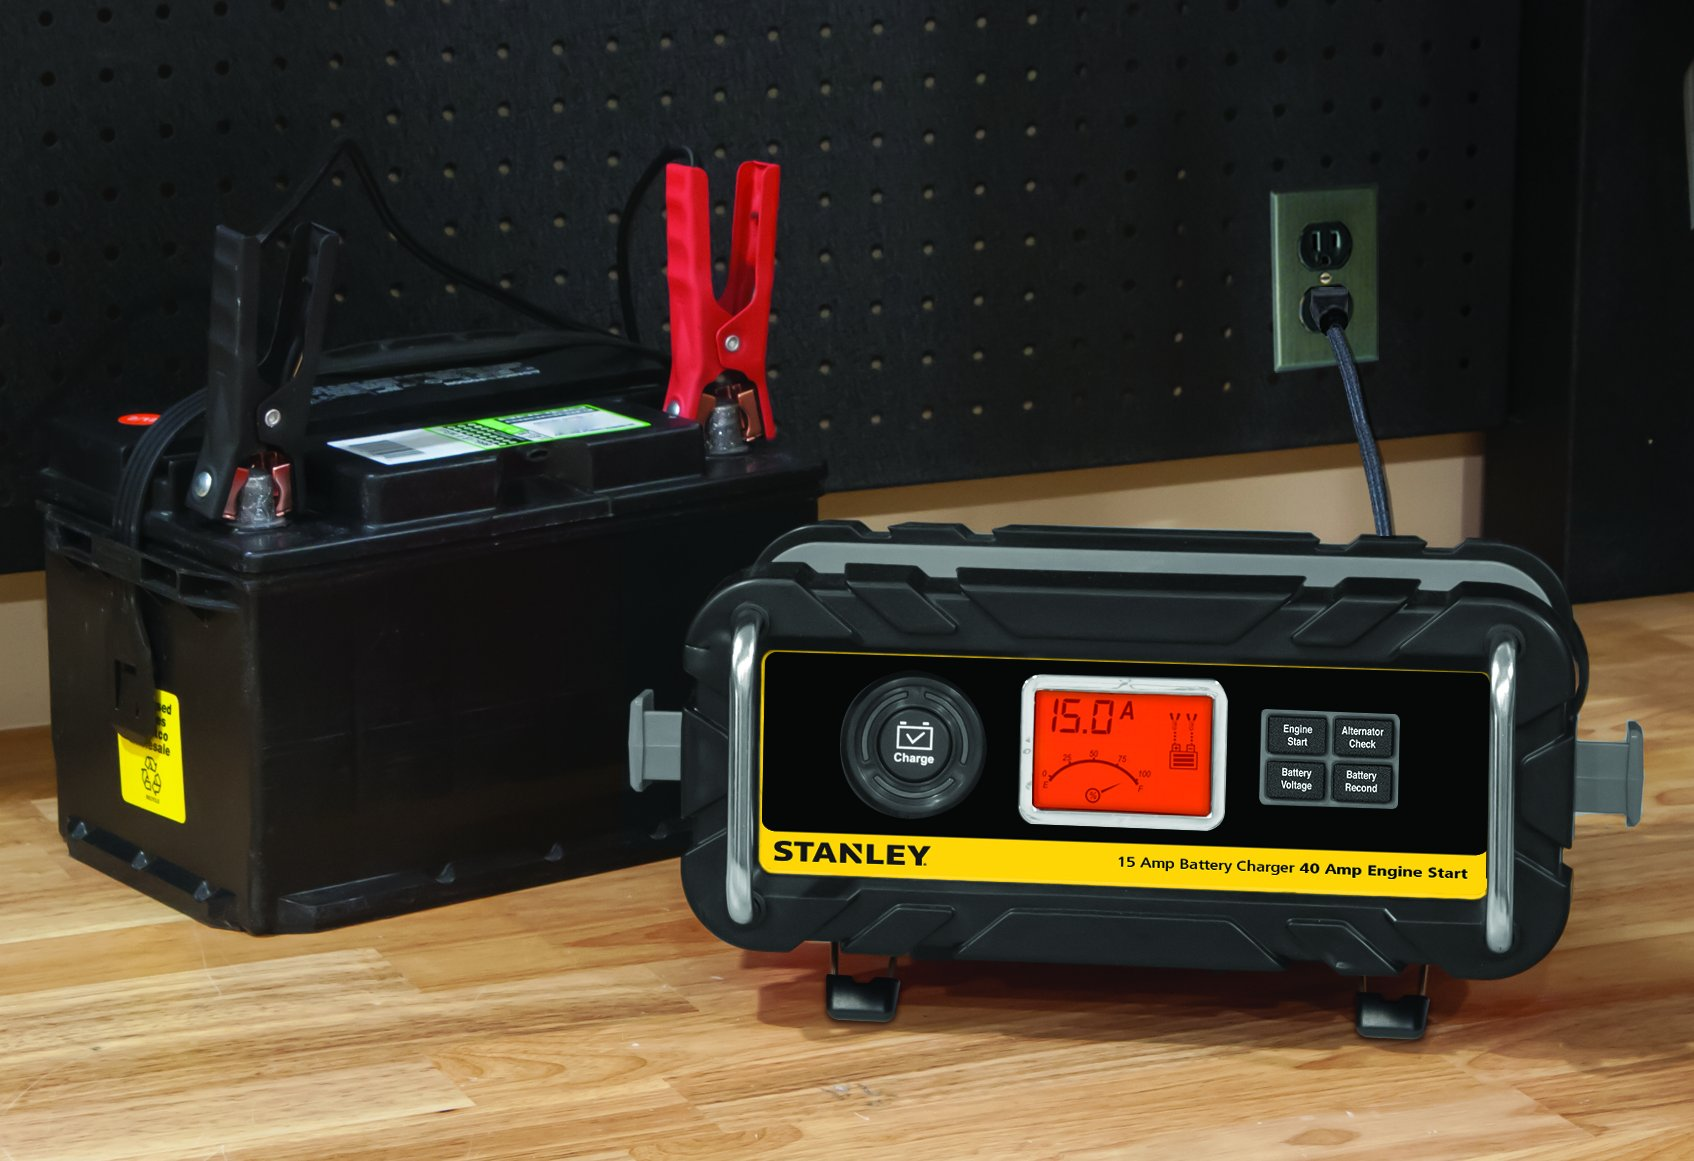 STANLEY BC15BS Fully Automatic 15 Amp 12V Bench Battery Charger/Maintainer with 40A Engine Start, Alternator Check, Cable Clamps by STANLEY (Image #2)